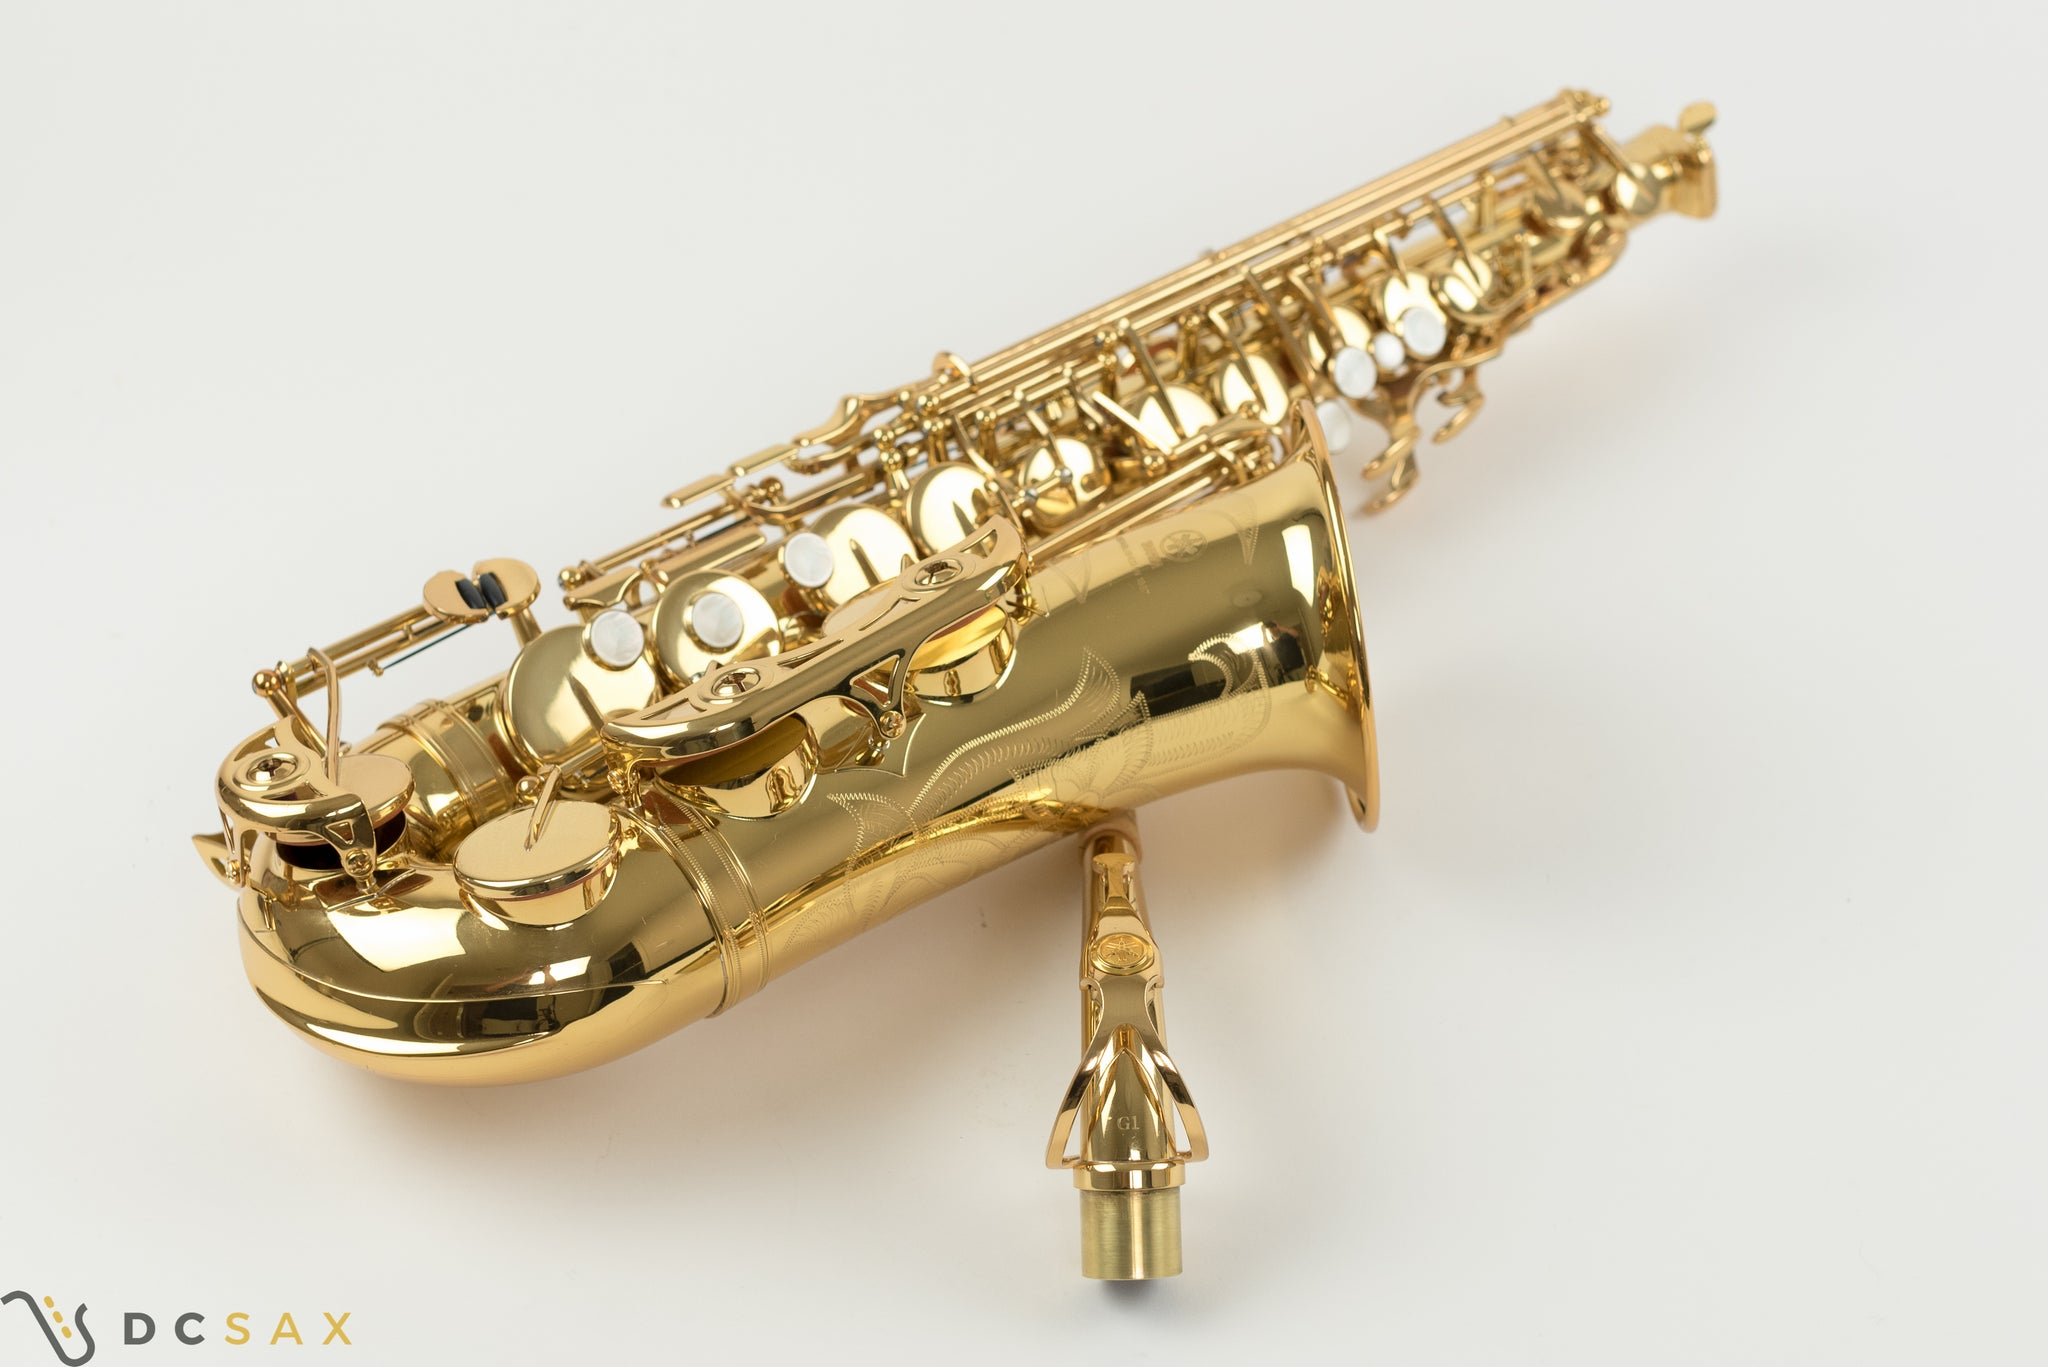 Yamaha YAS-62 Alto Saxophone, Series II, Just Serviced, Near Mint, Video